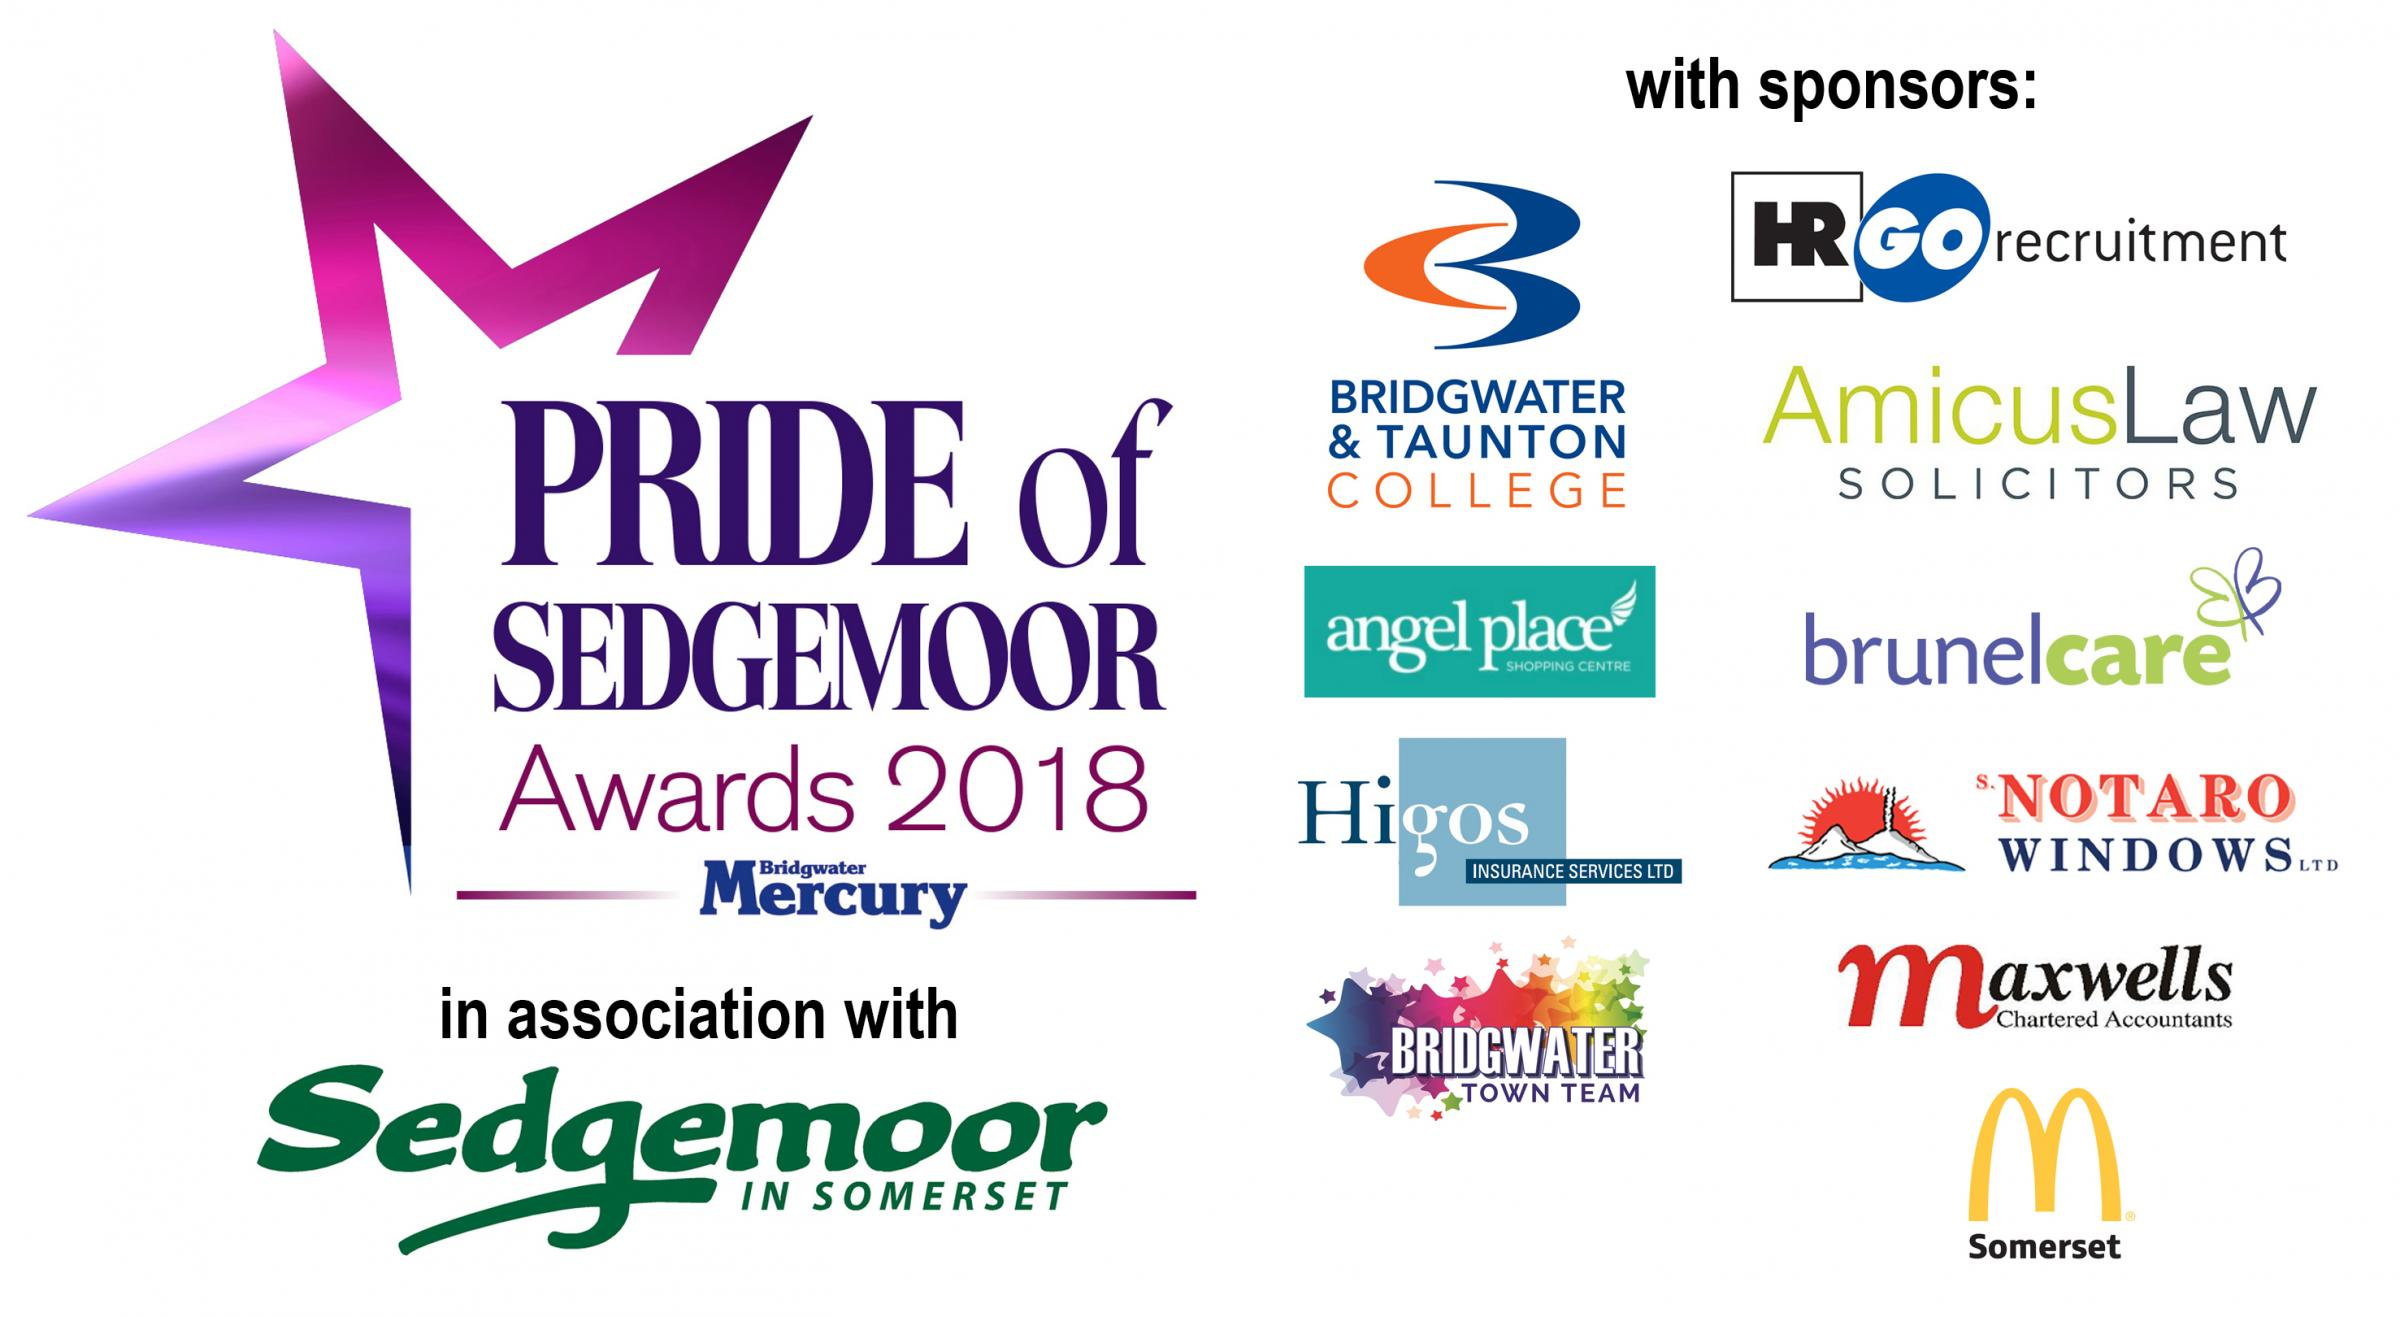 NOMINATIONS OPEN: For the Pride of Sedgemoor Awards